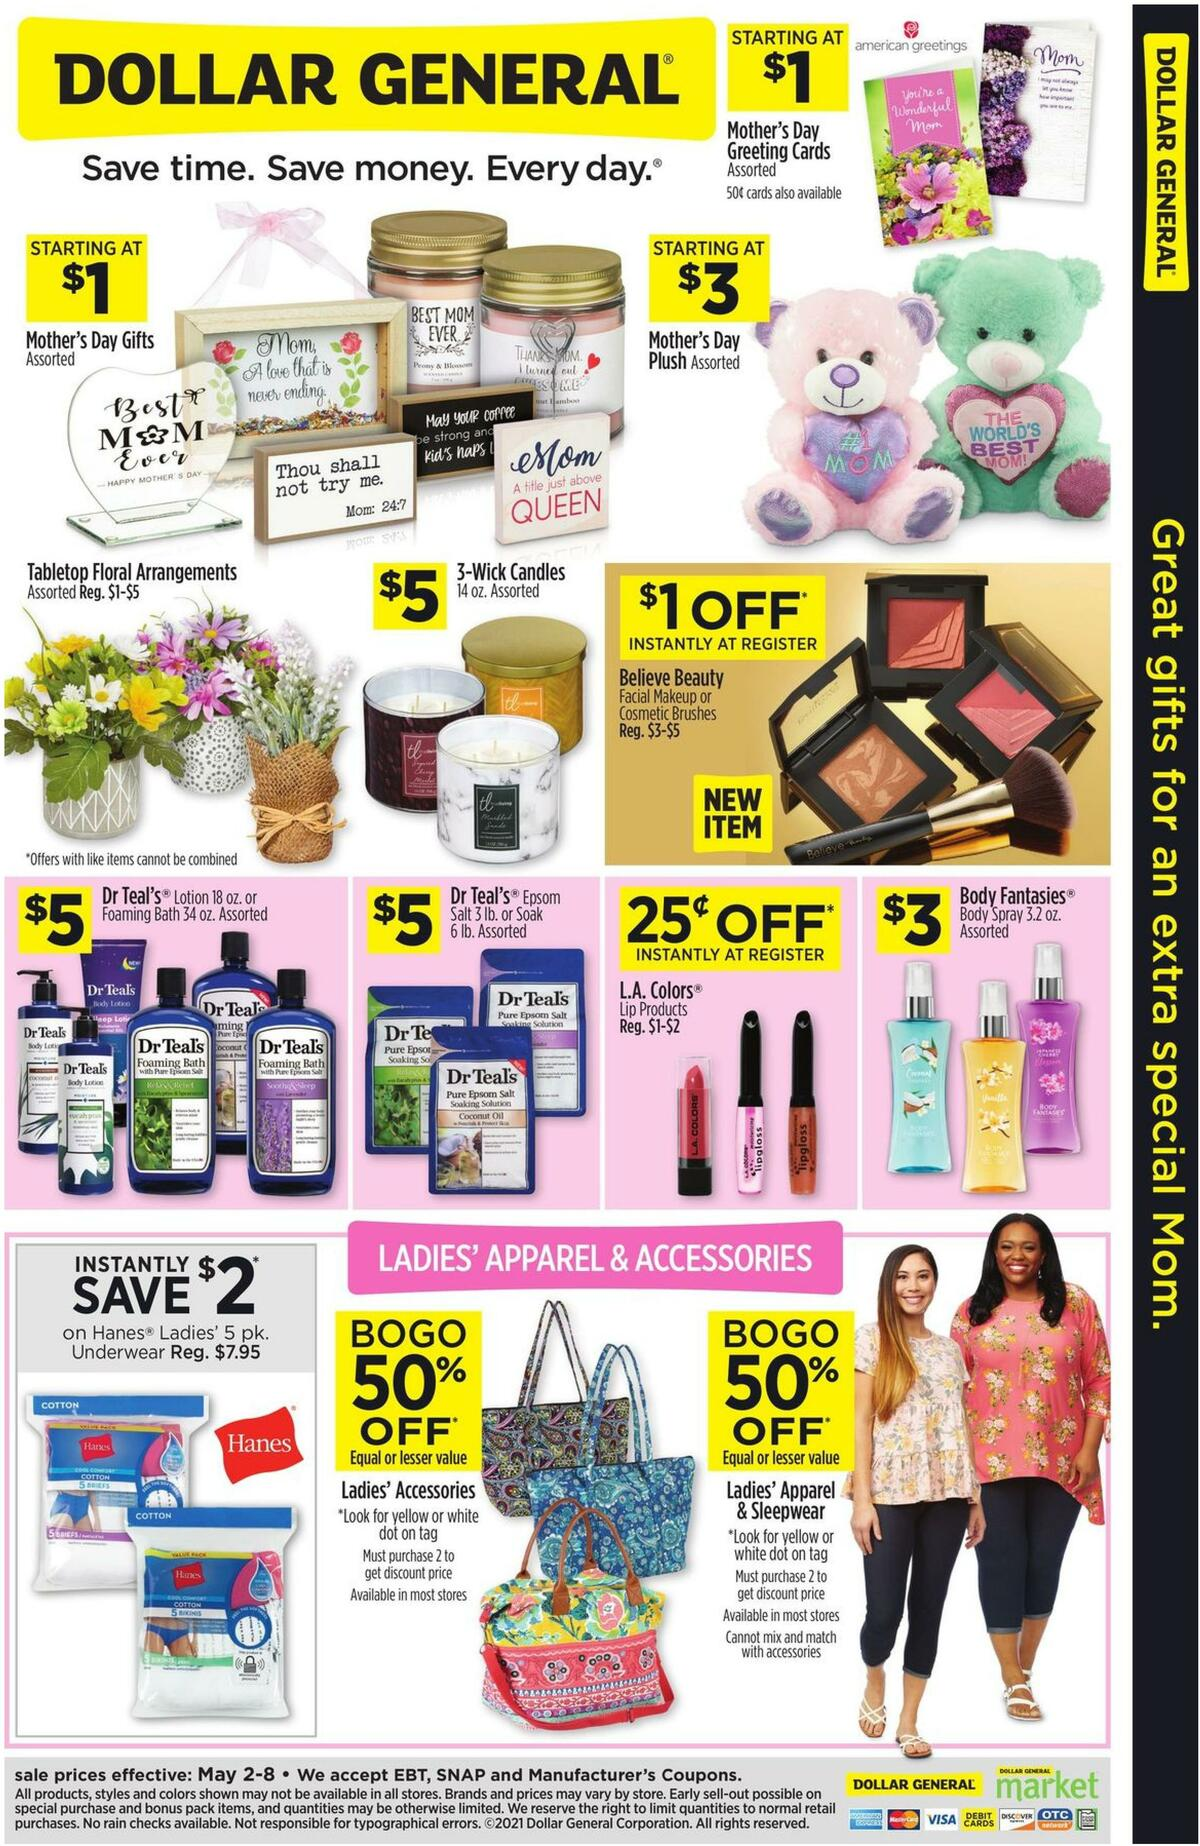 Dollar General Great Gifts For An Extra Special Mom Weekly Ad from May 2